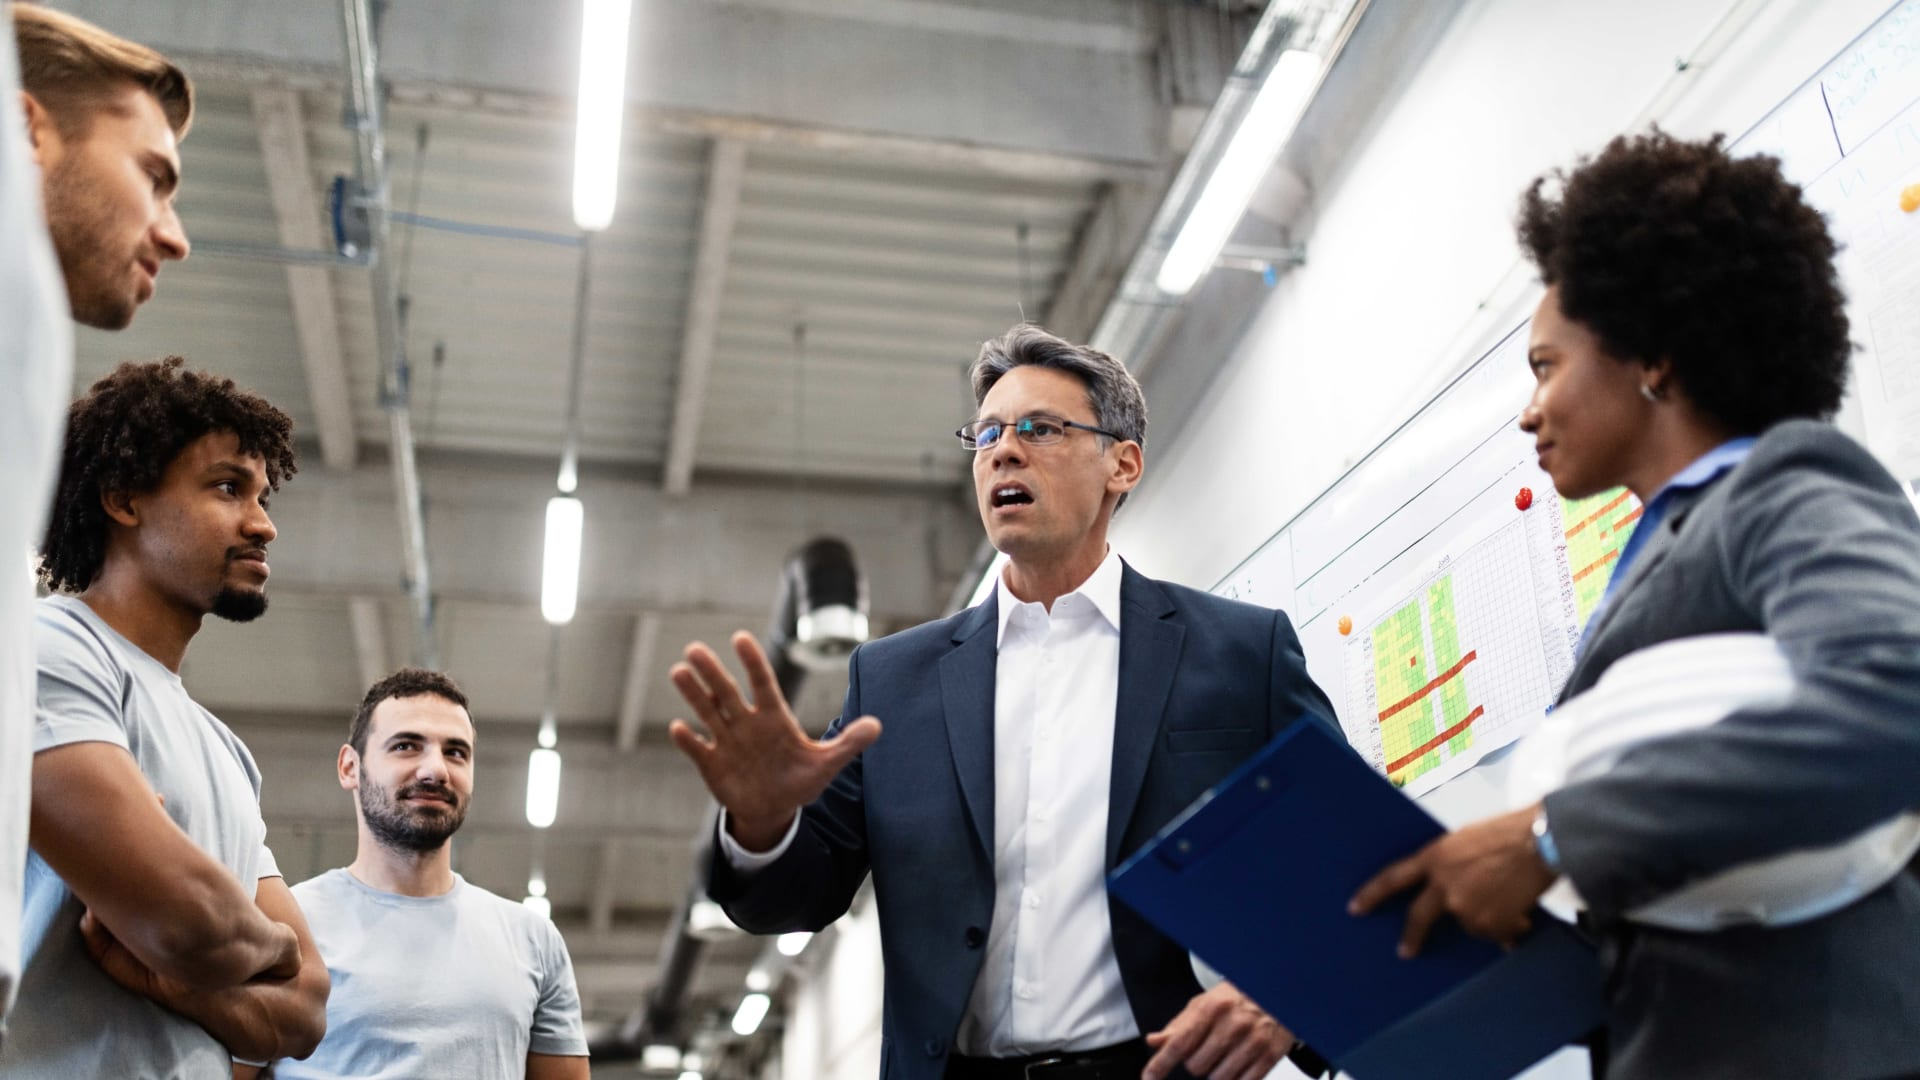 6 Strategies to Better Your Leadership Skills and Confidence